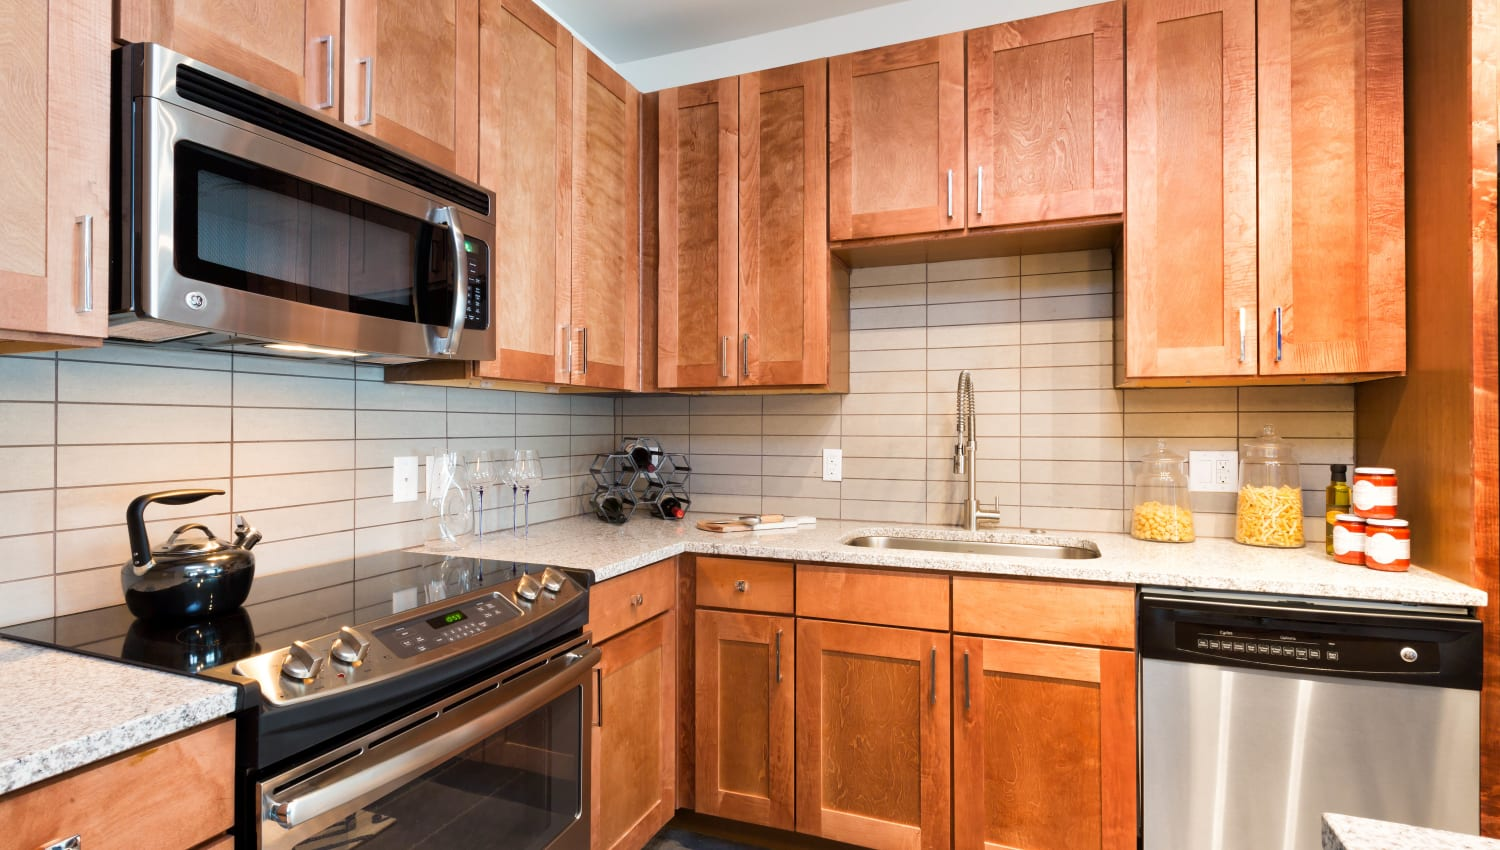 Cherry wood cabinetry in a model apartment's kitchen at The Davis in Fort Worth, Texas